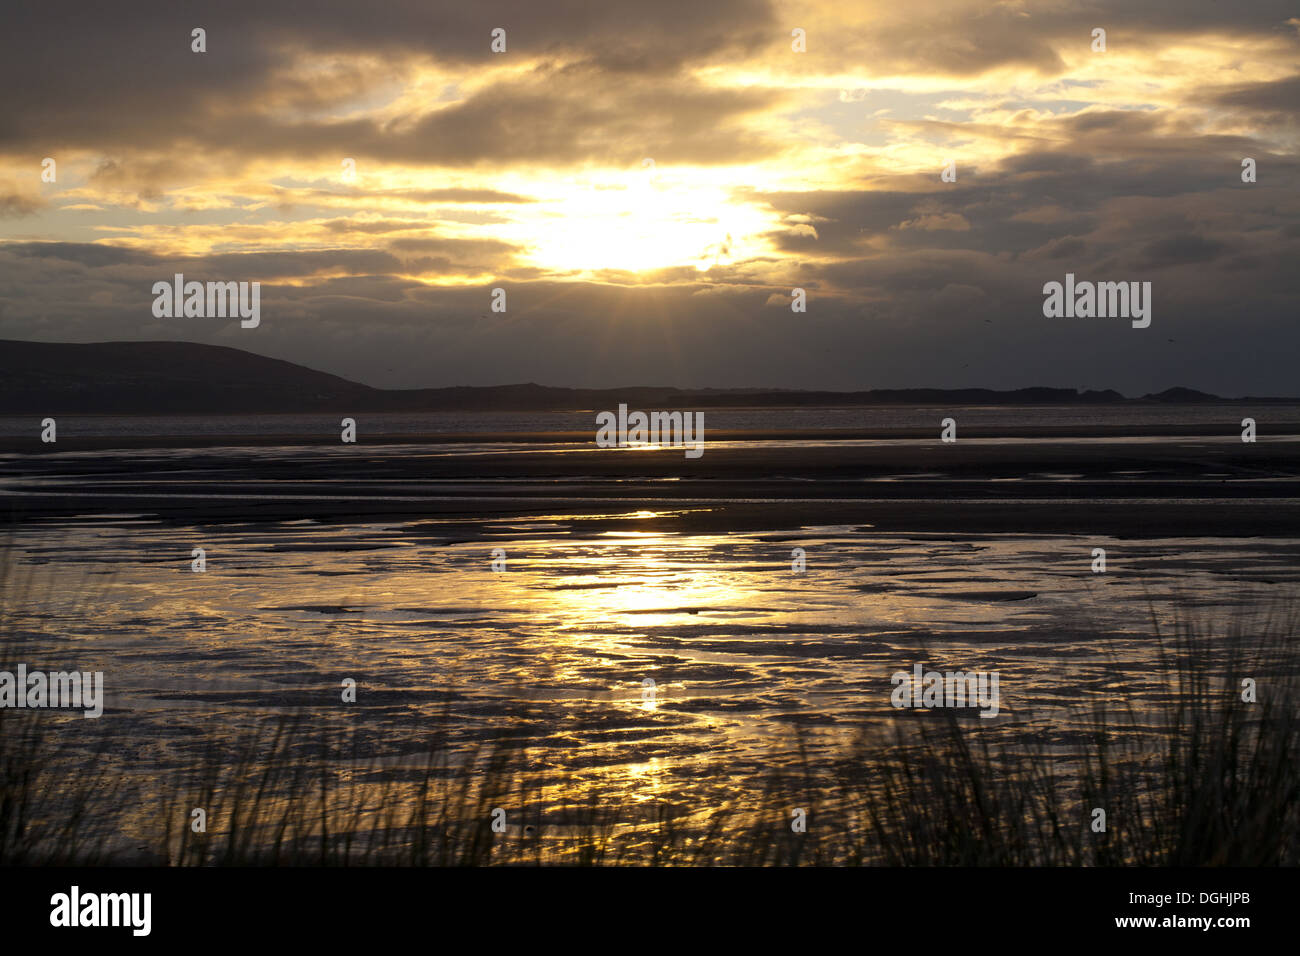 View across estuary at sunset, River Loughor, from Llanelli to Gower Peninsula, Carmarthenshire, Wales, January Stock Photo